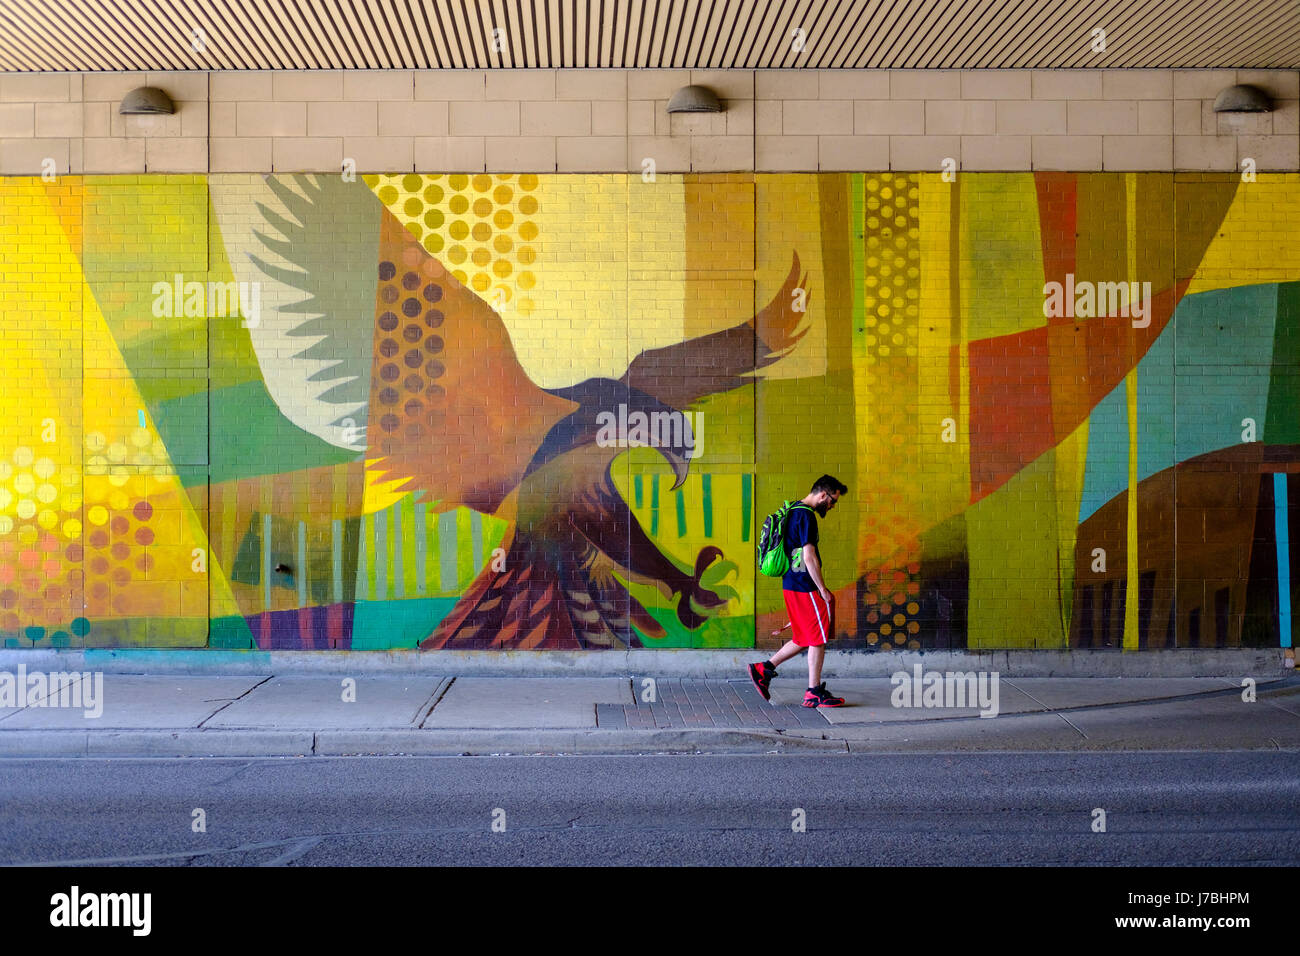 wall-graffiti-art-of-an-eagle-about-to-g